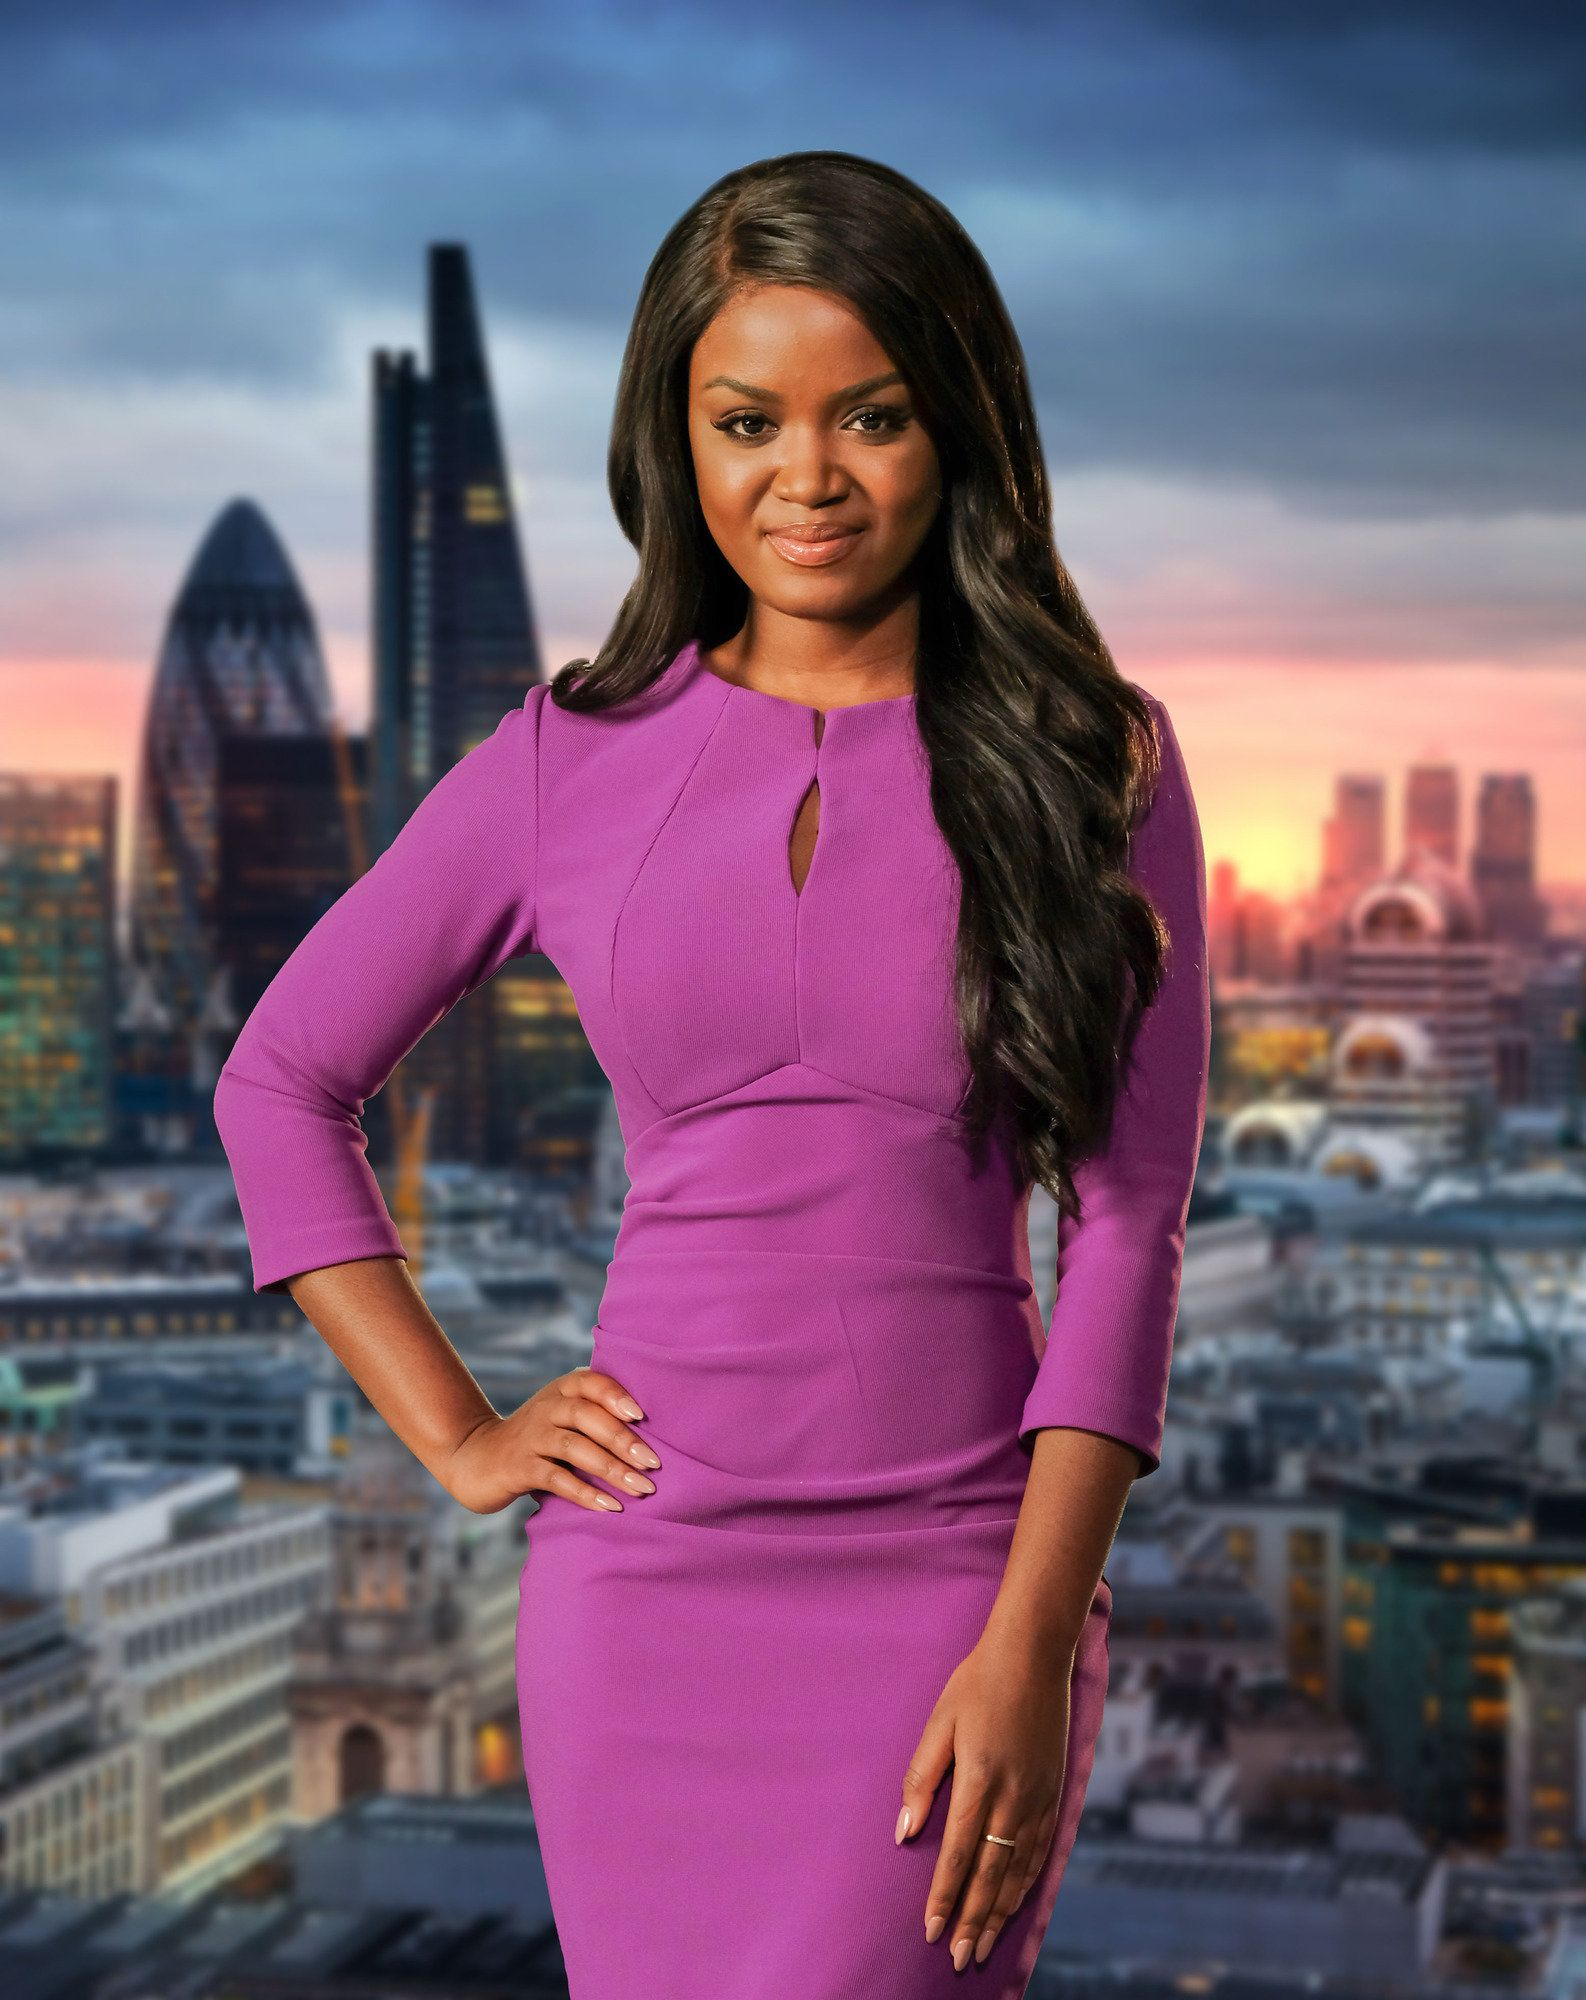 'Apprentice' Star Joanna Slams Show Portrayal: 'I Feared Looking Like I Was Playing Race